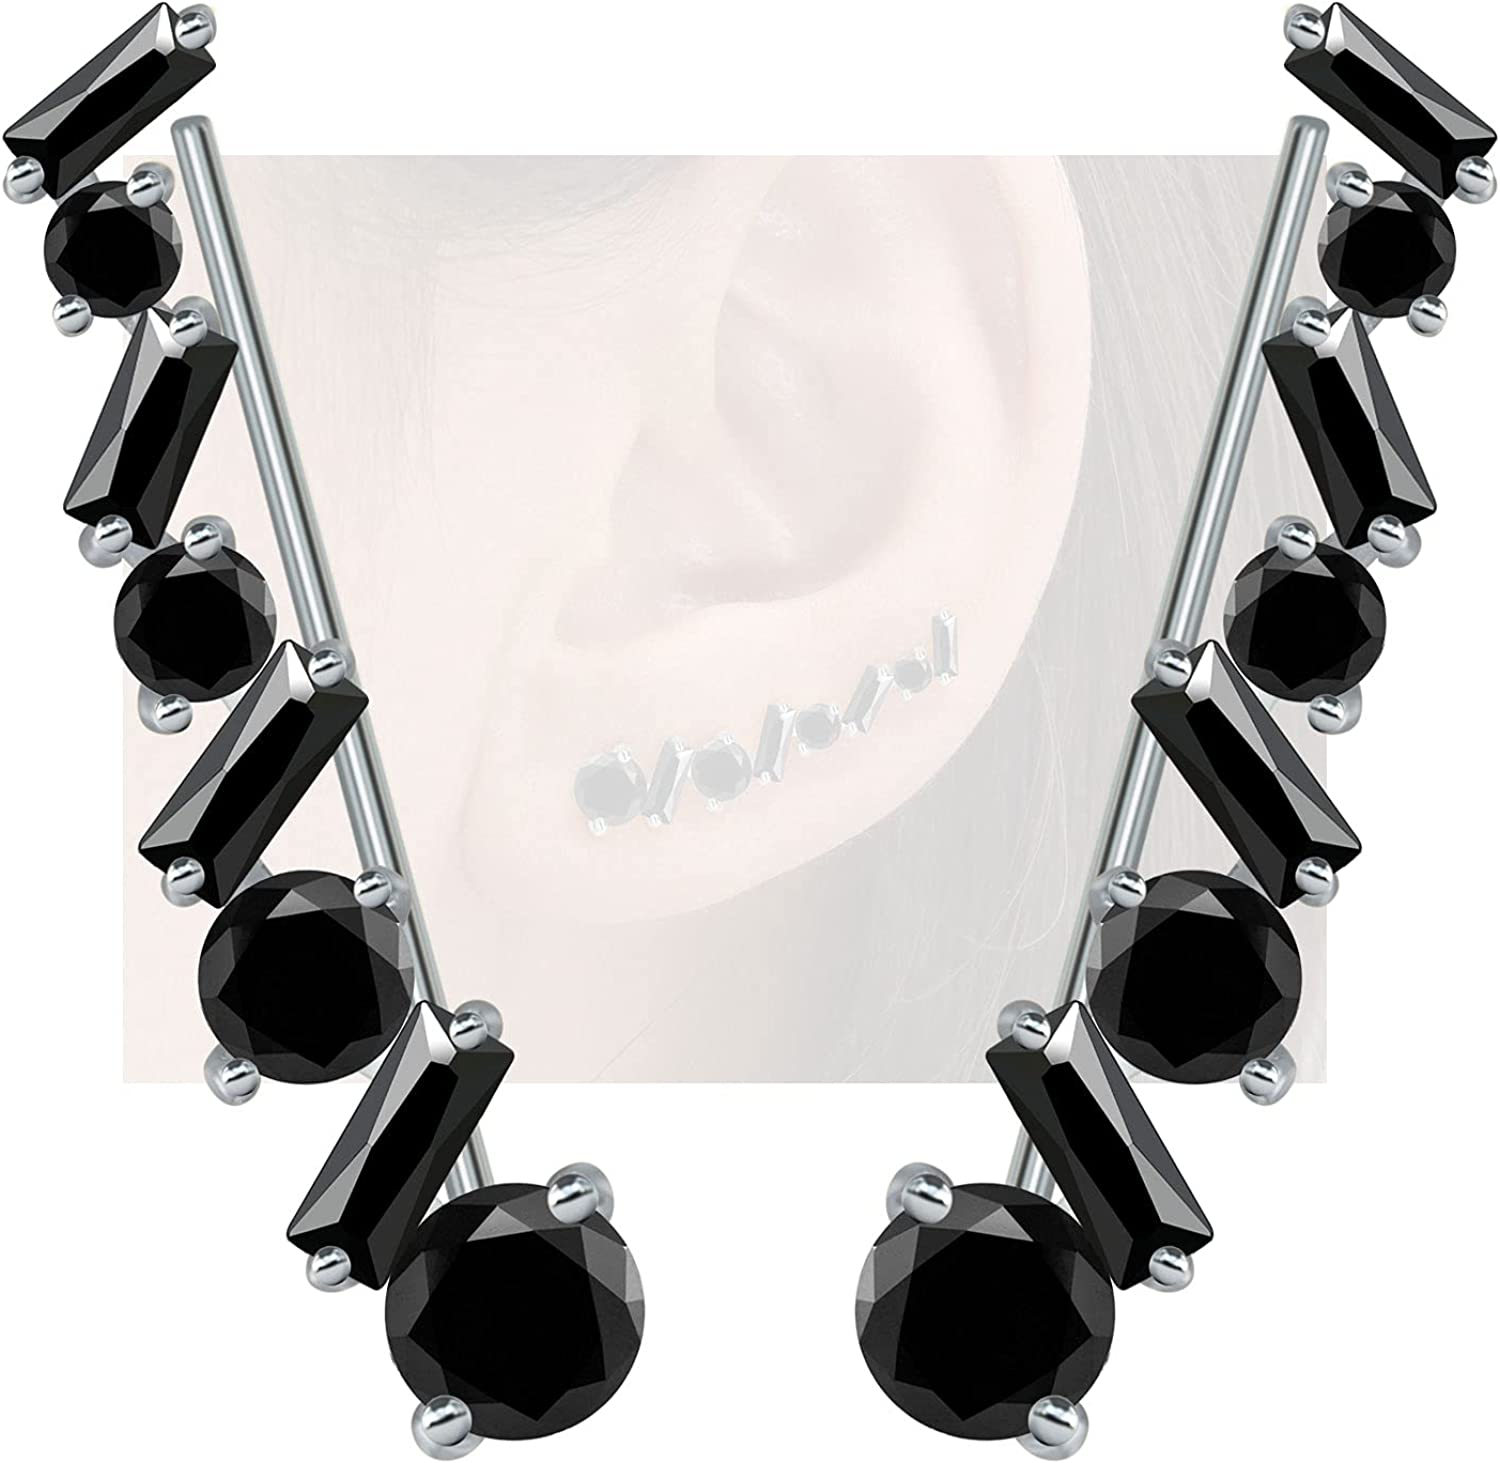 At Special sale item the price of surprise NEOSHOW Sterling Silver Ear Climber Cuffs W Earrings Crawler for